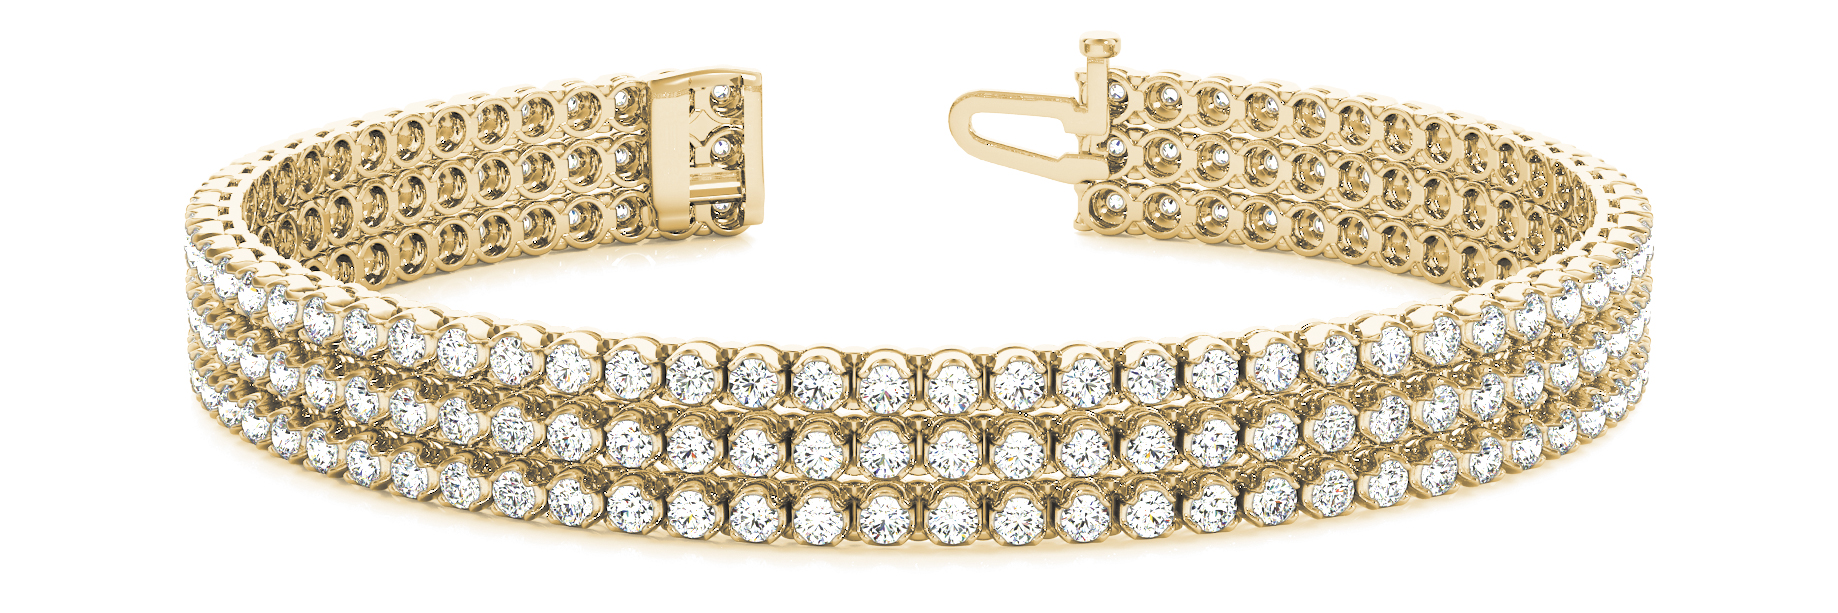 Three Row Round Diamond Yellow Gold Bracelet 3.7 Ct.